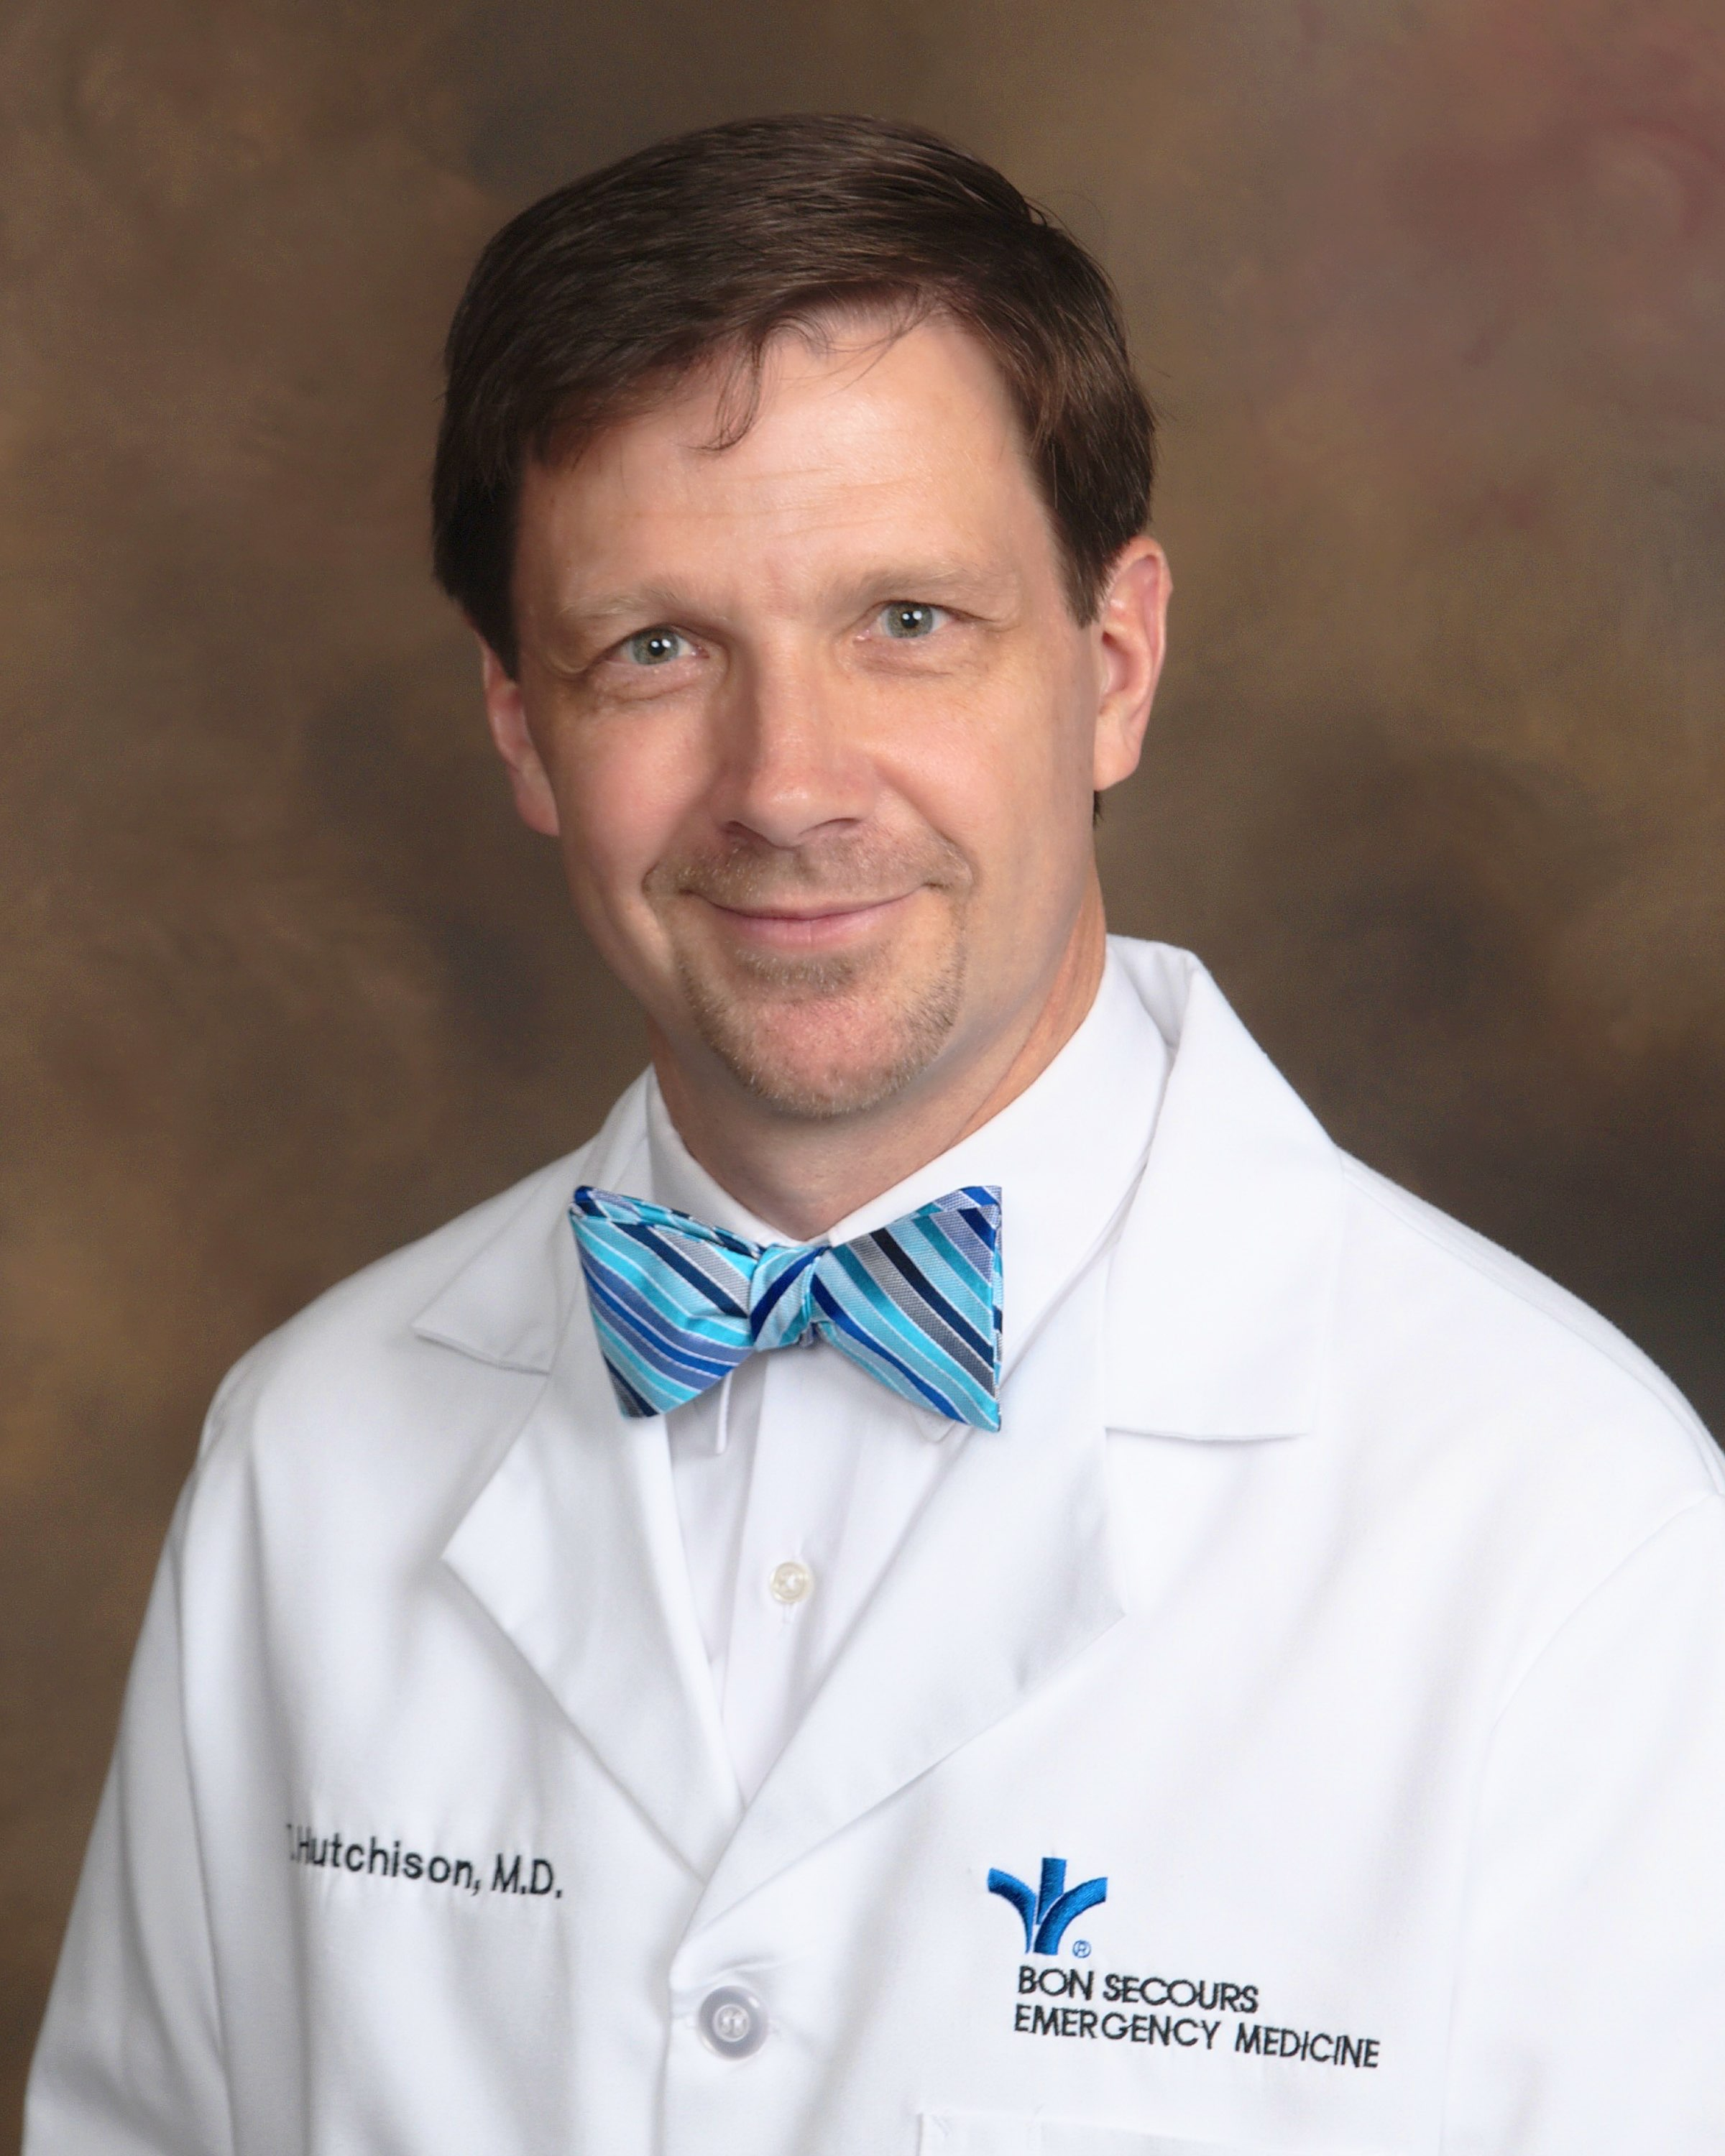 Timothy W Hutchison, MD